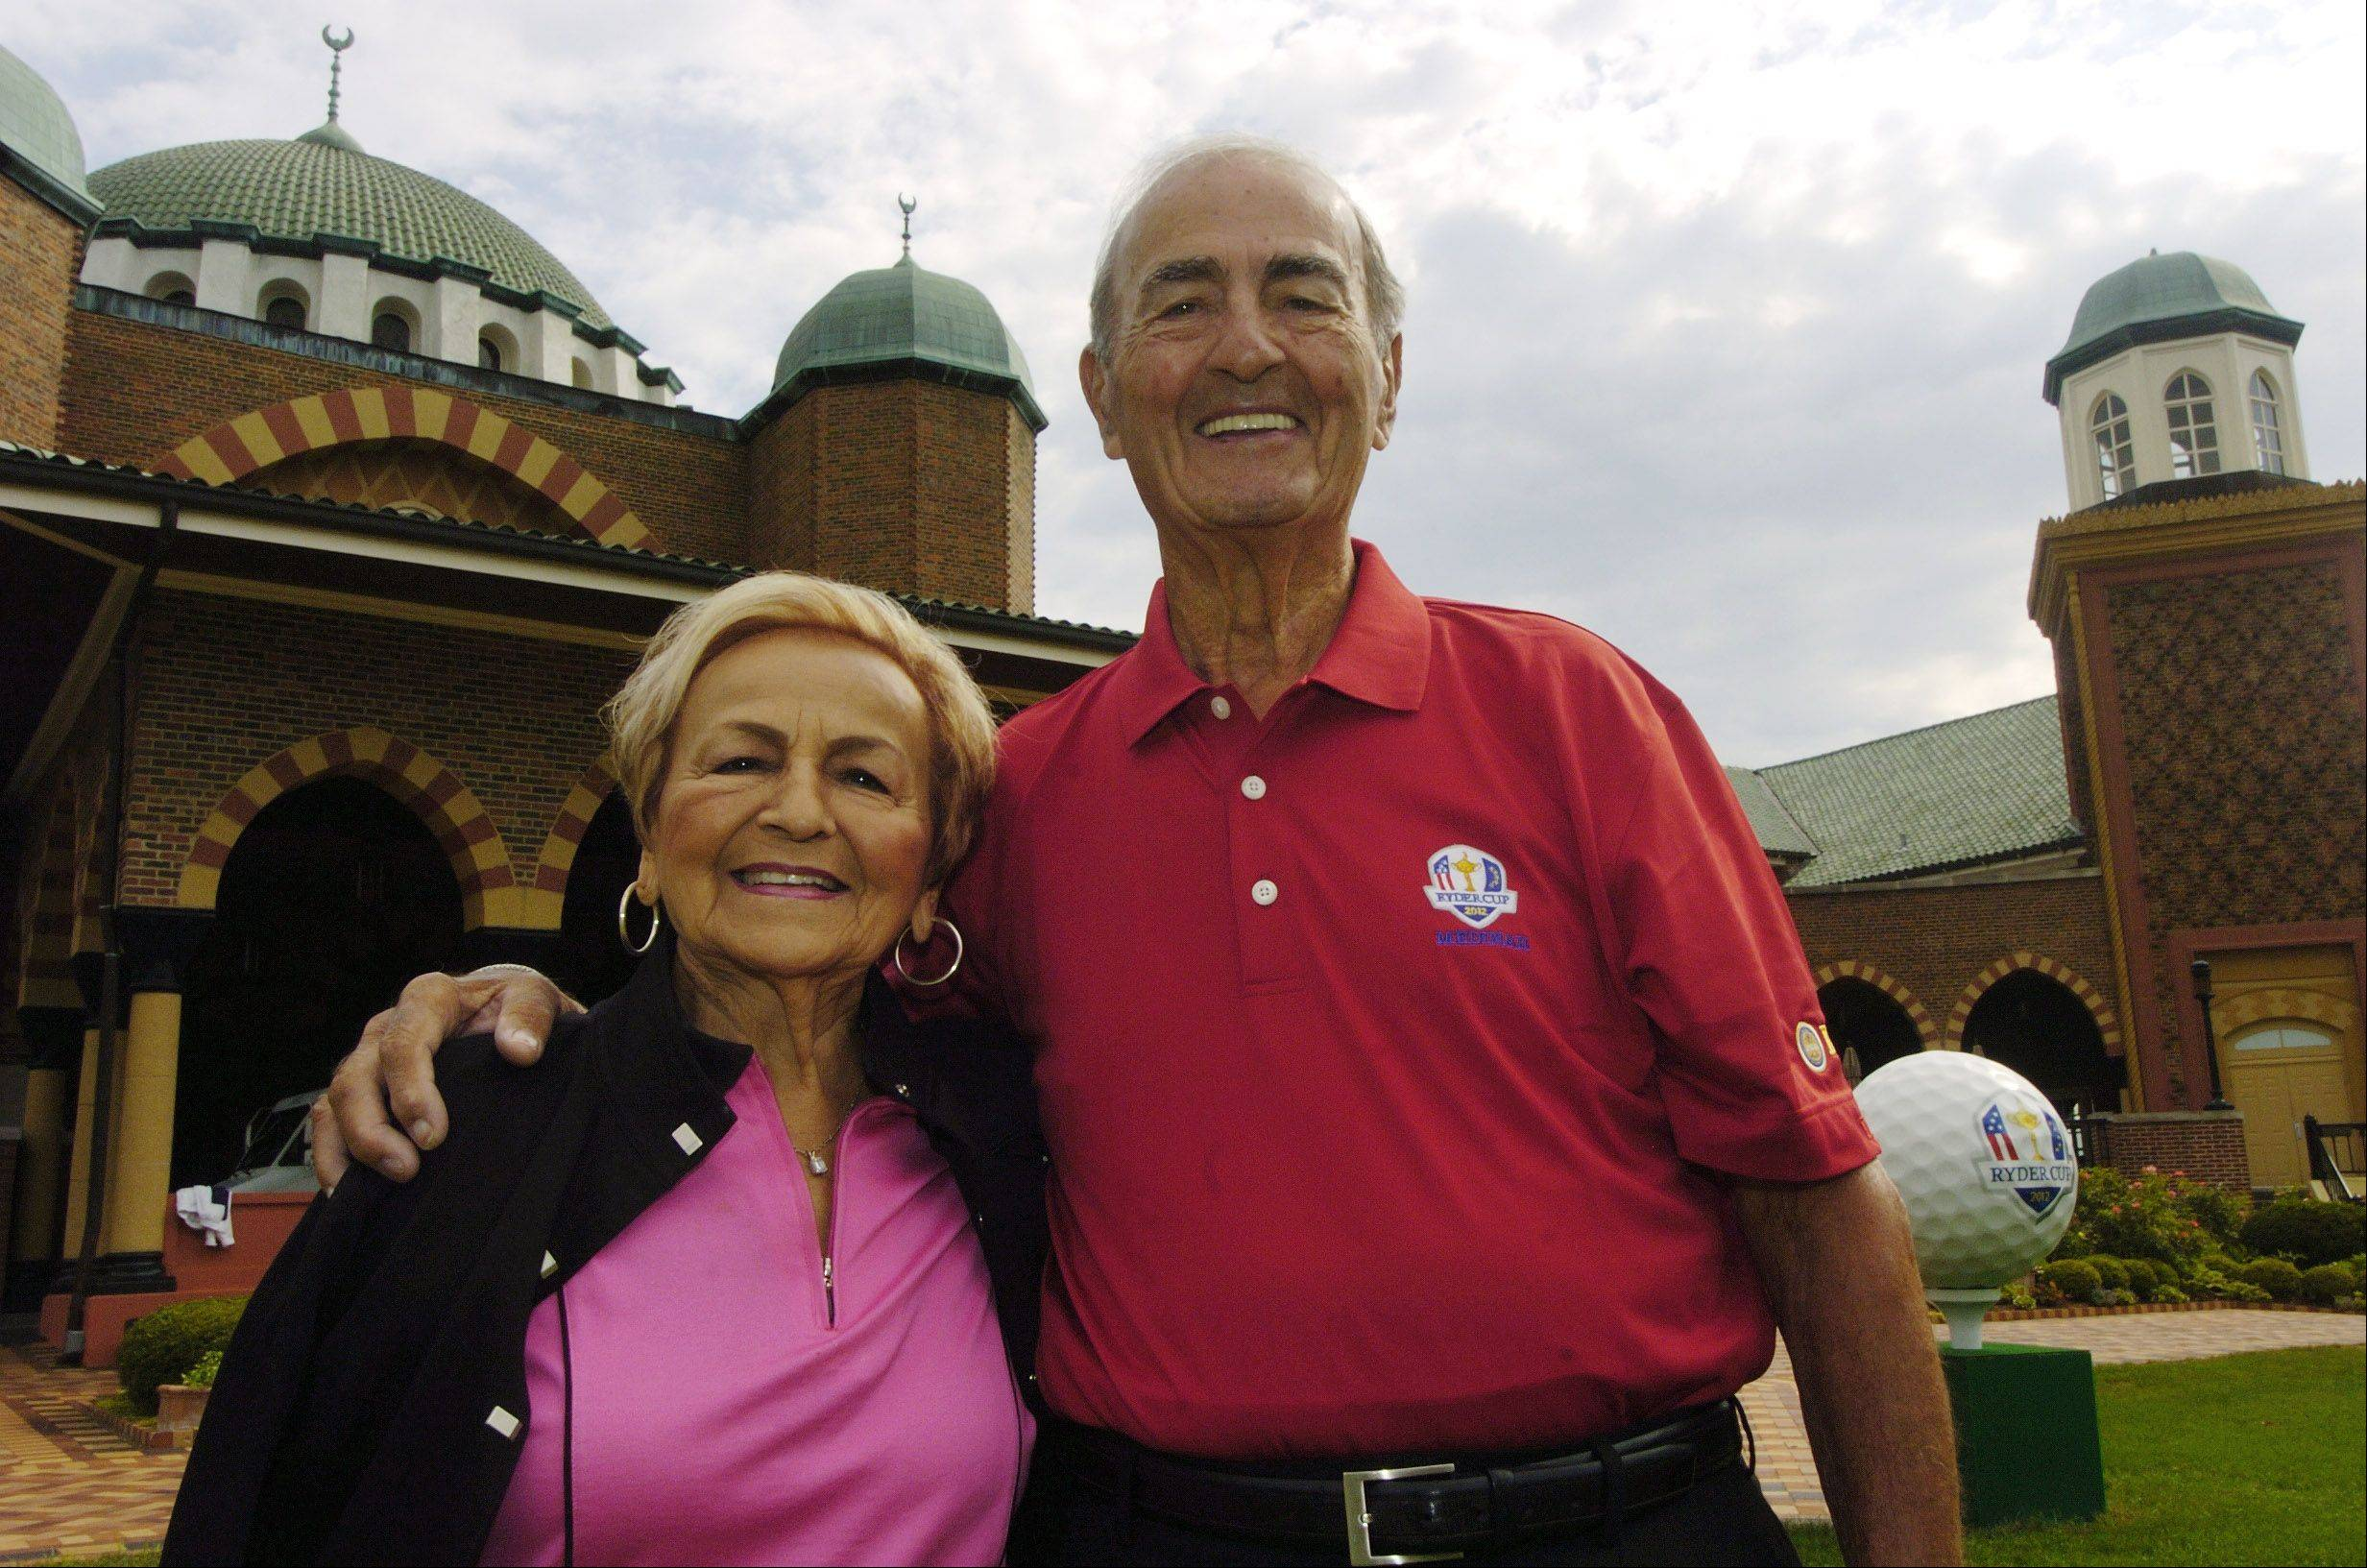 JOE LEWNARD/jlewnard@dailyherald.com Bertha, 87, and Peter Broustis, soon to turn 89, of Park Ridge will be the oldest volunteers working at the Ryder Cup golf tournament at the Medinah Country Club later this month.